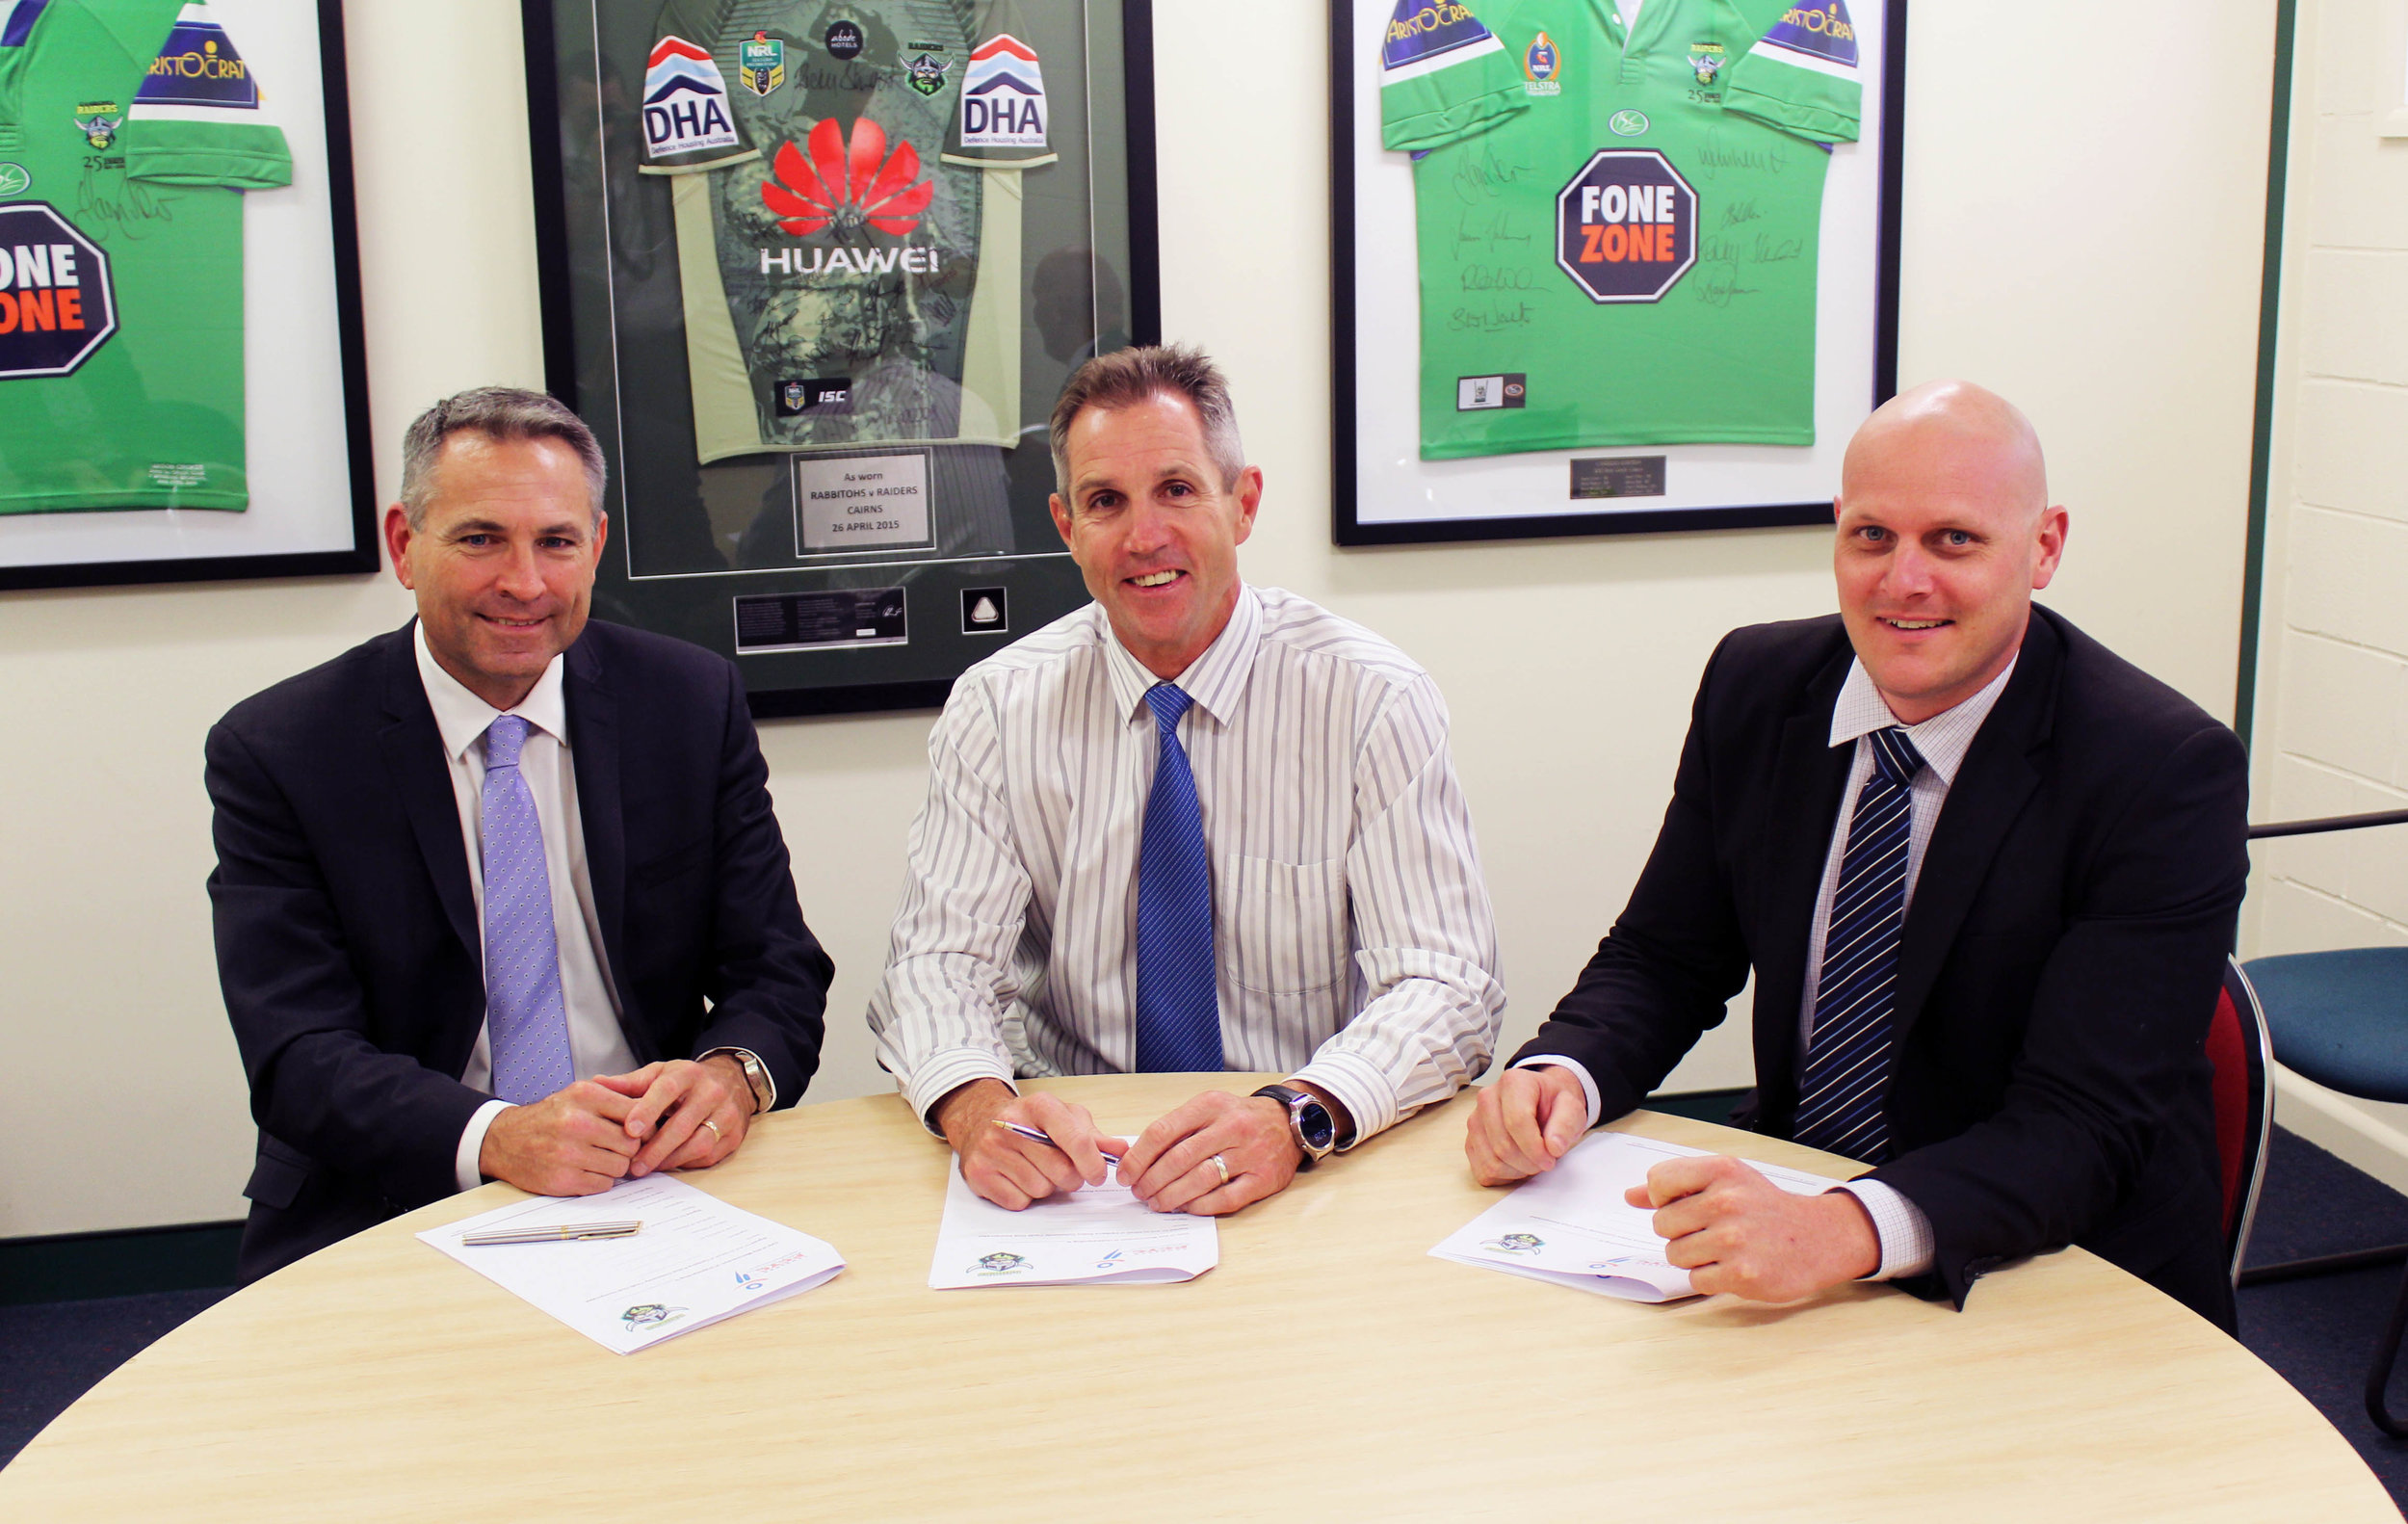 Canberra PCYC President David McLean, Raiders CEO Don Furner and Canberra PCYC General Manager Stephen Imrie formally sign the MOU between the Canberra PCYC and Canberra Raiders on Thursday at Raiders HQ